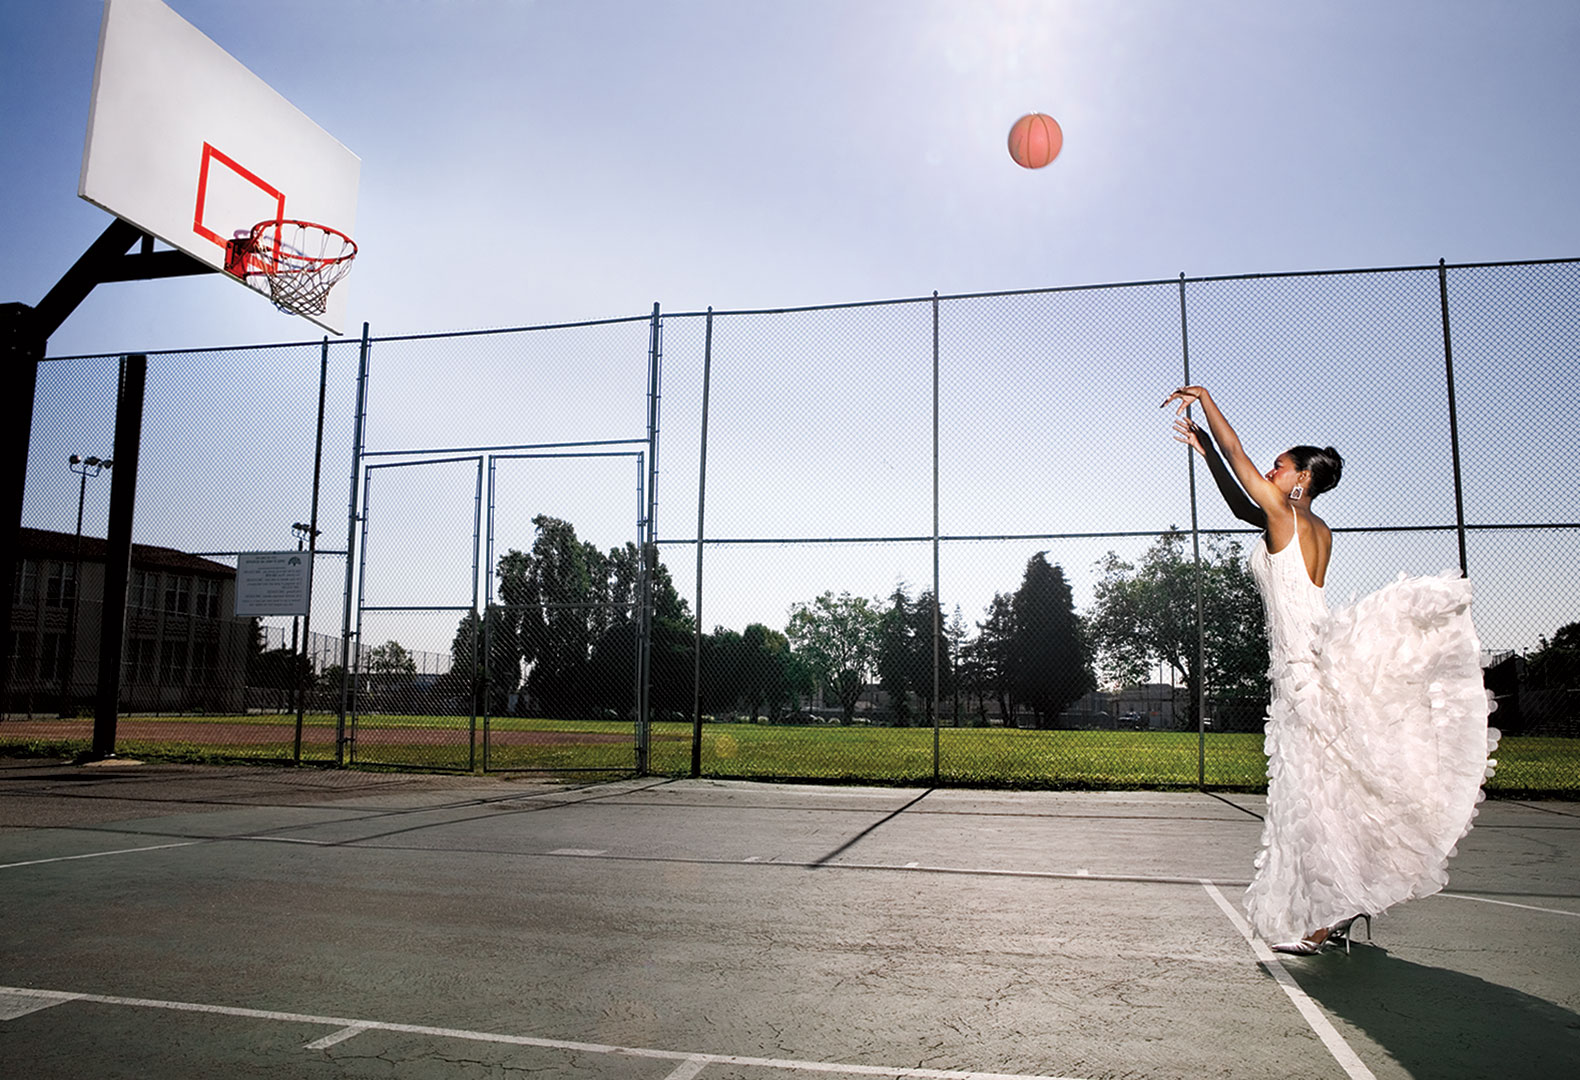 woman play basketball in a dress